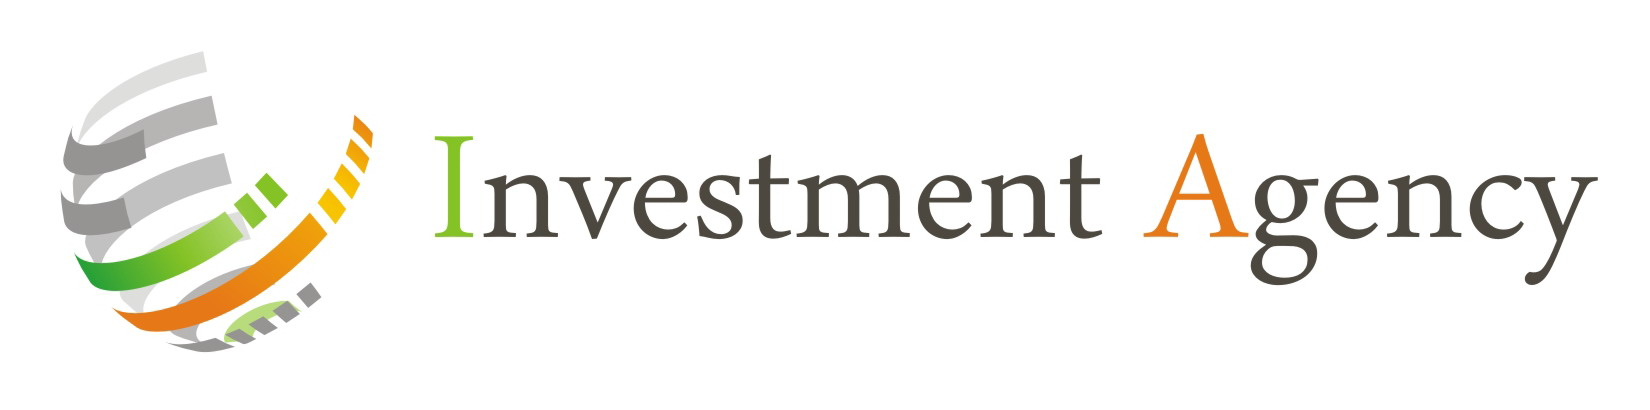 Invesment Agency